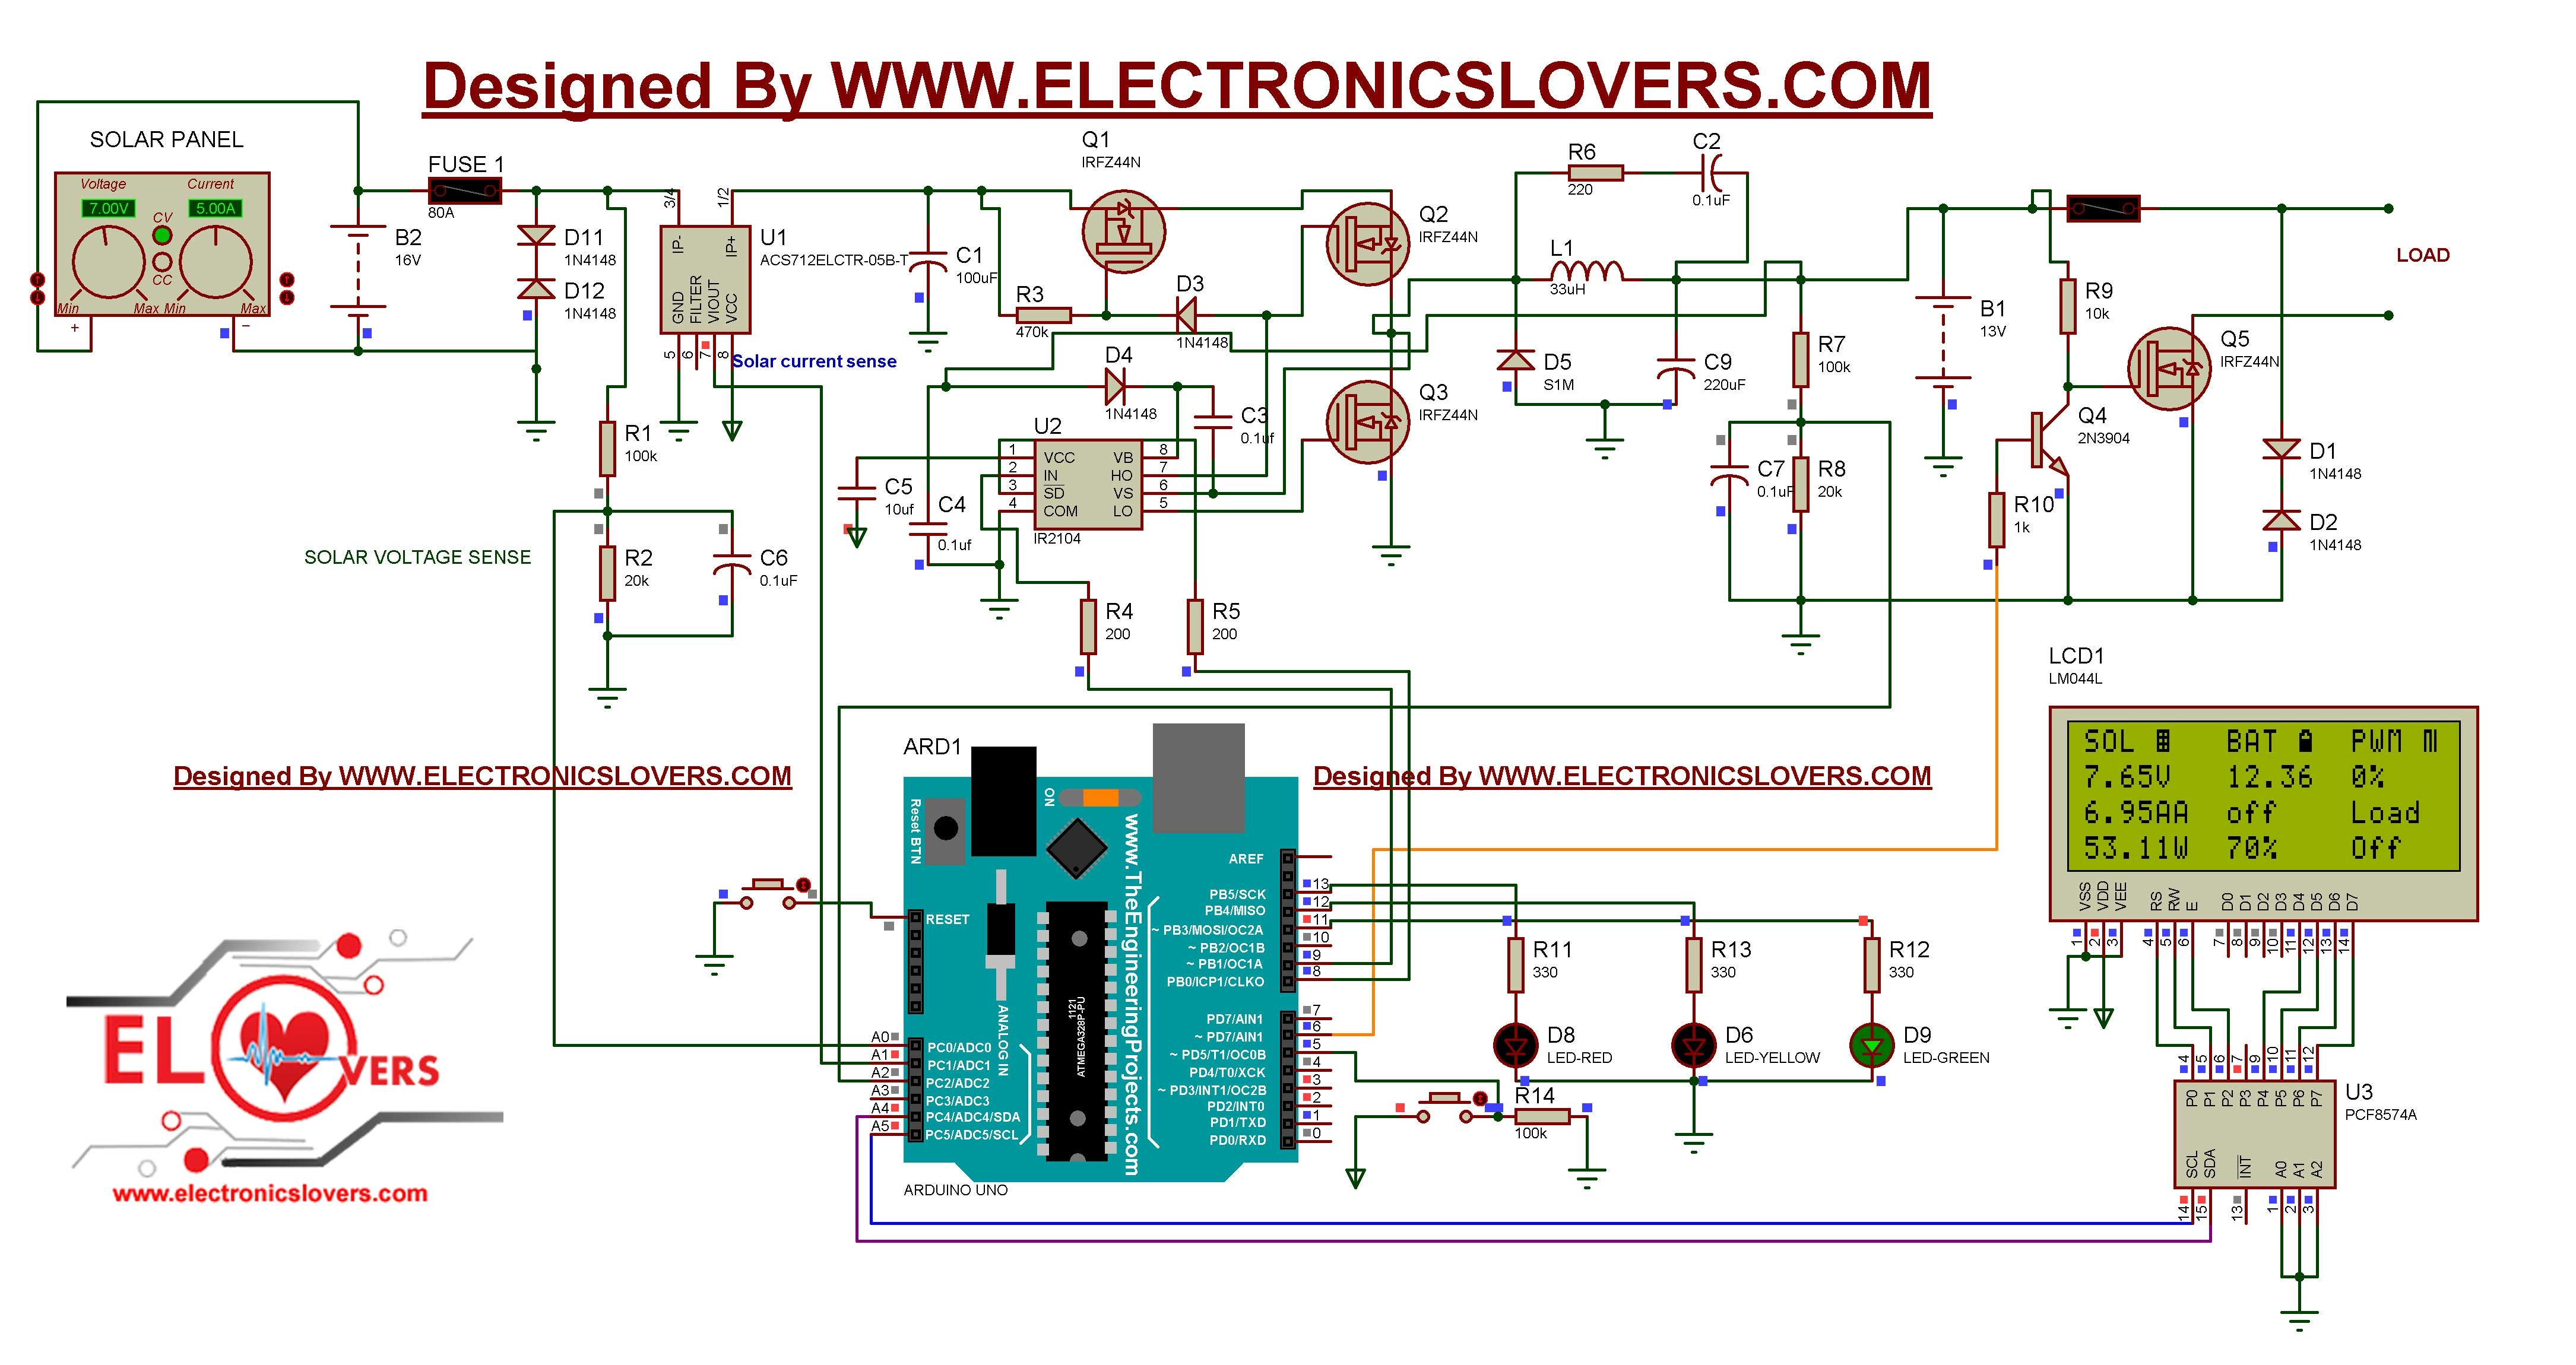 home made arduino based mppt charge controller hackster iosimulation of mppt charge controller project in proteus software